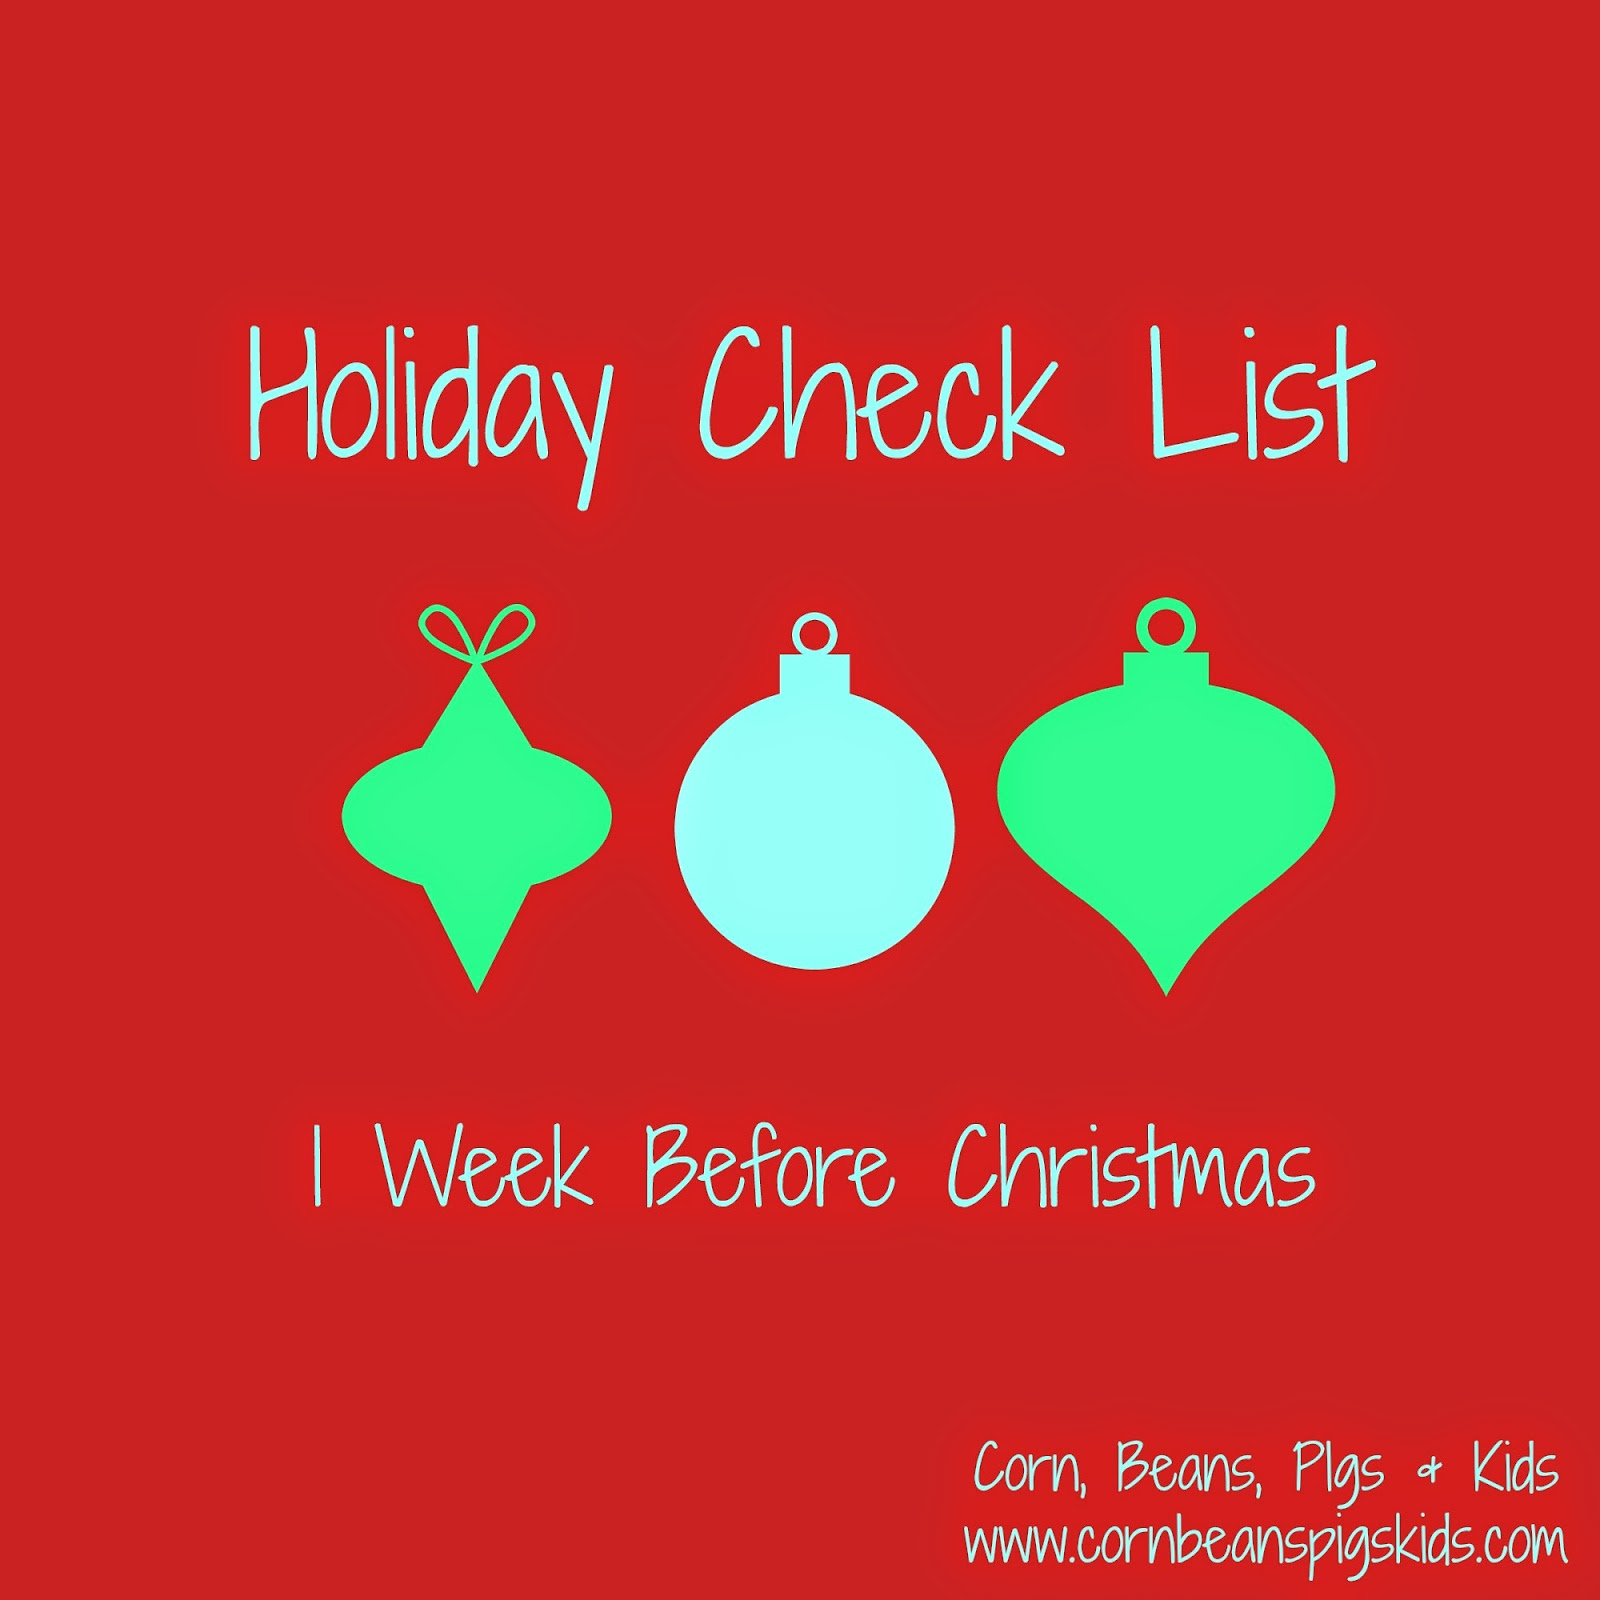 Holiday Check List - 1 Week Before Christmas